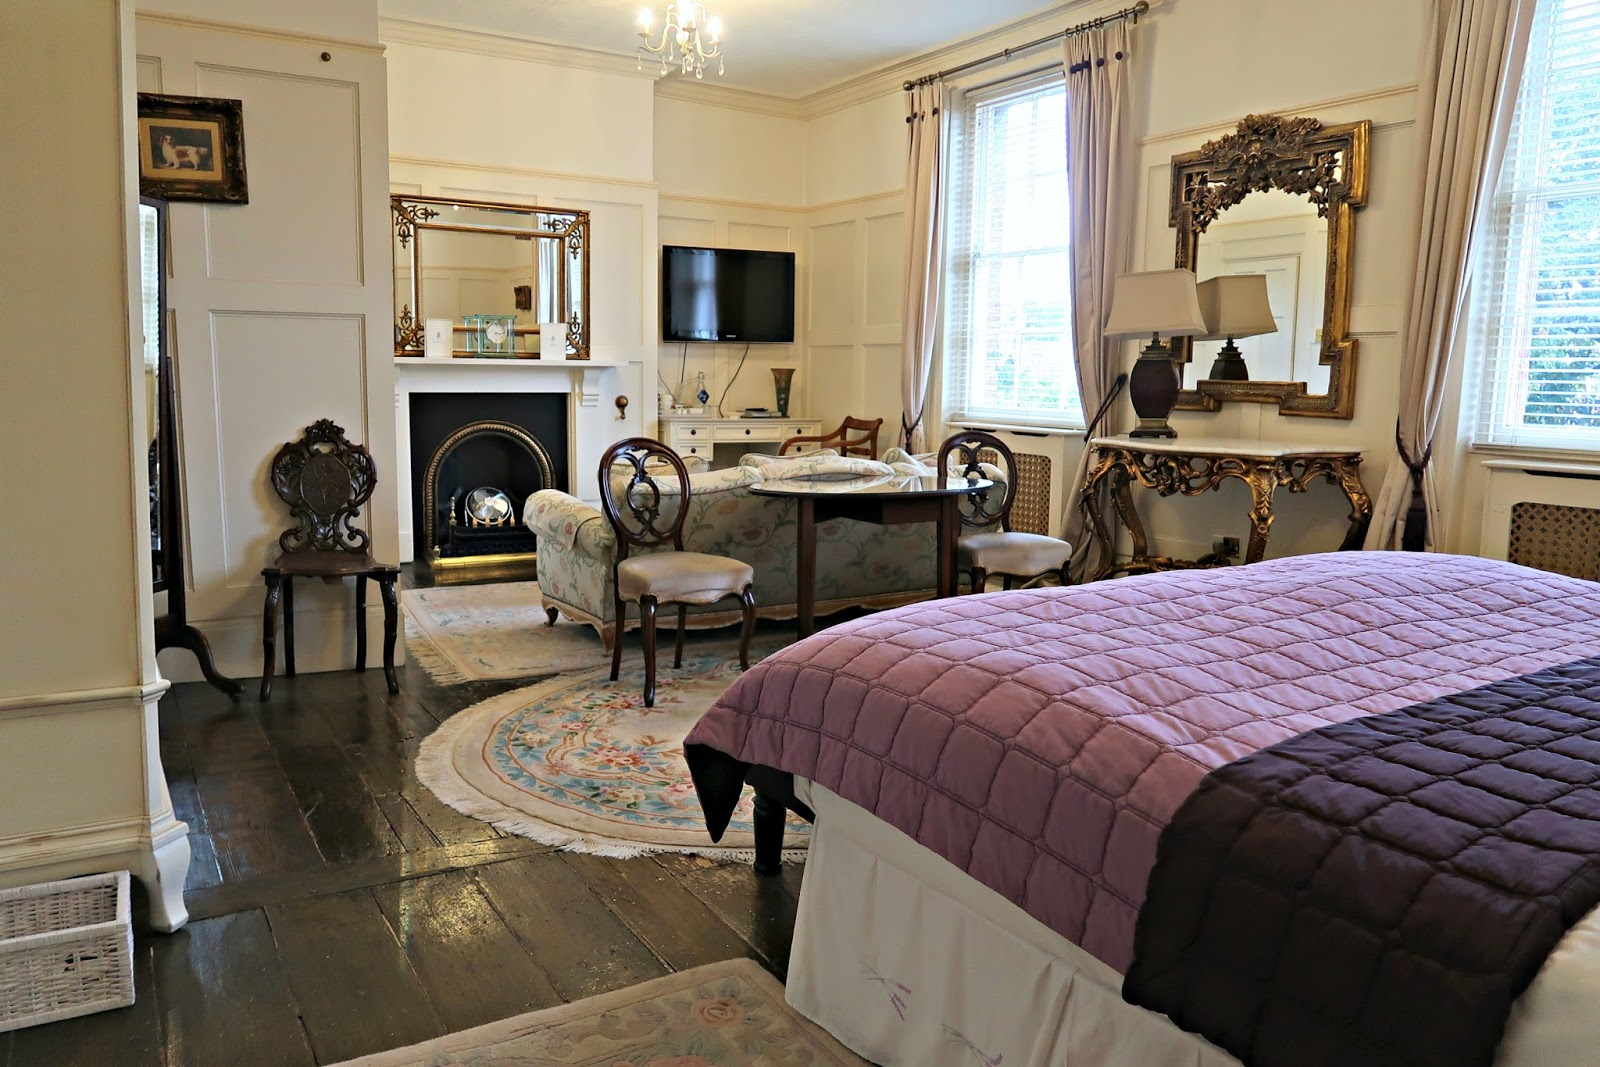 Netherstowe House Hotel Luxury Review Lichfield Afternoon Tea, Dinner, Bed & Breakfast